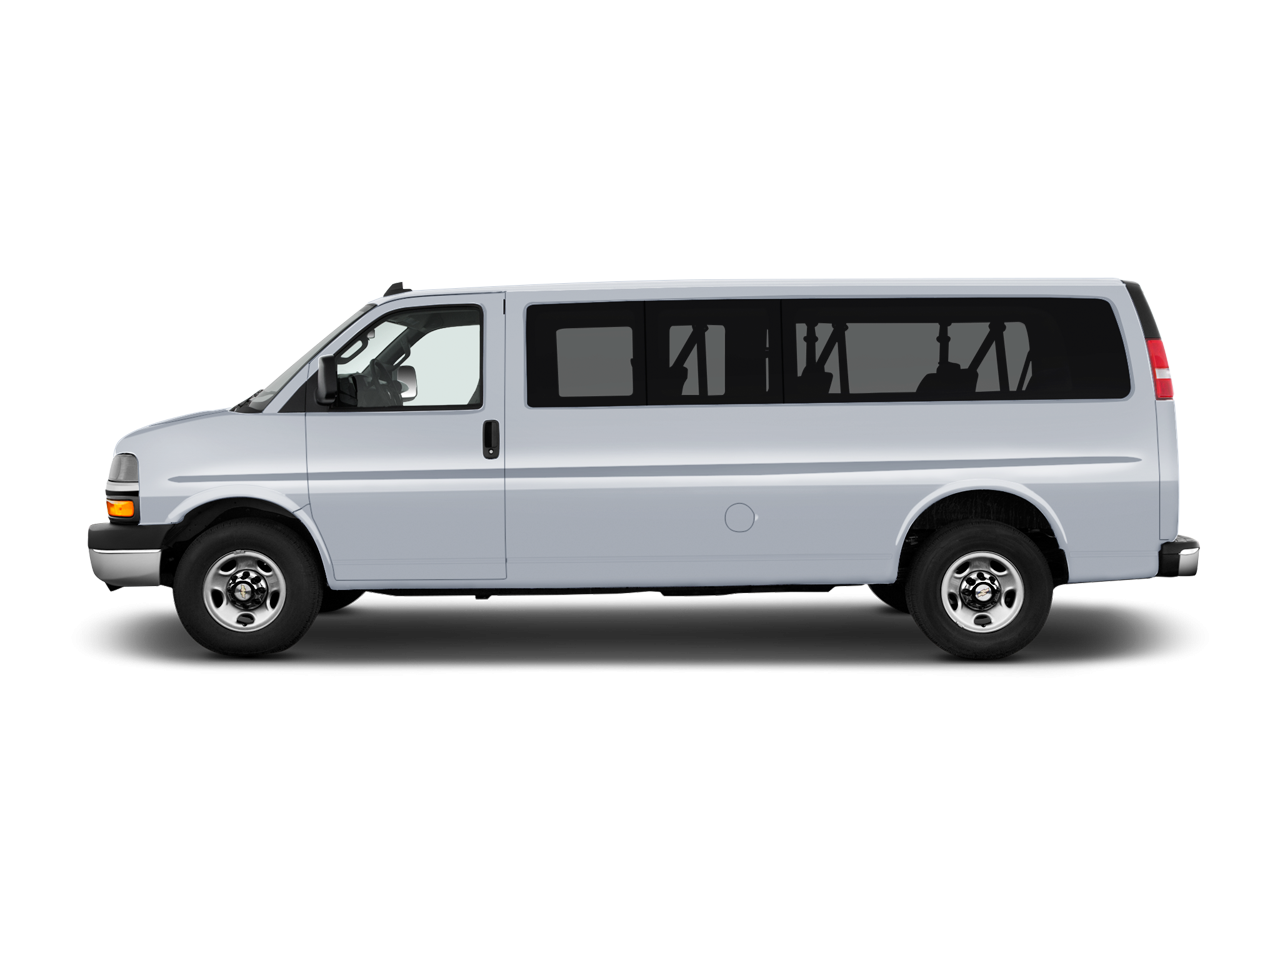 Used chevrolet express passenger. Minivan clipart van chevy